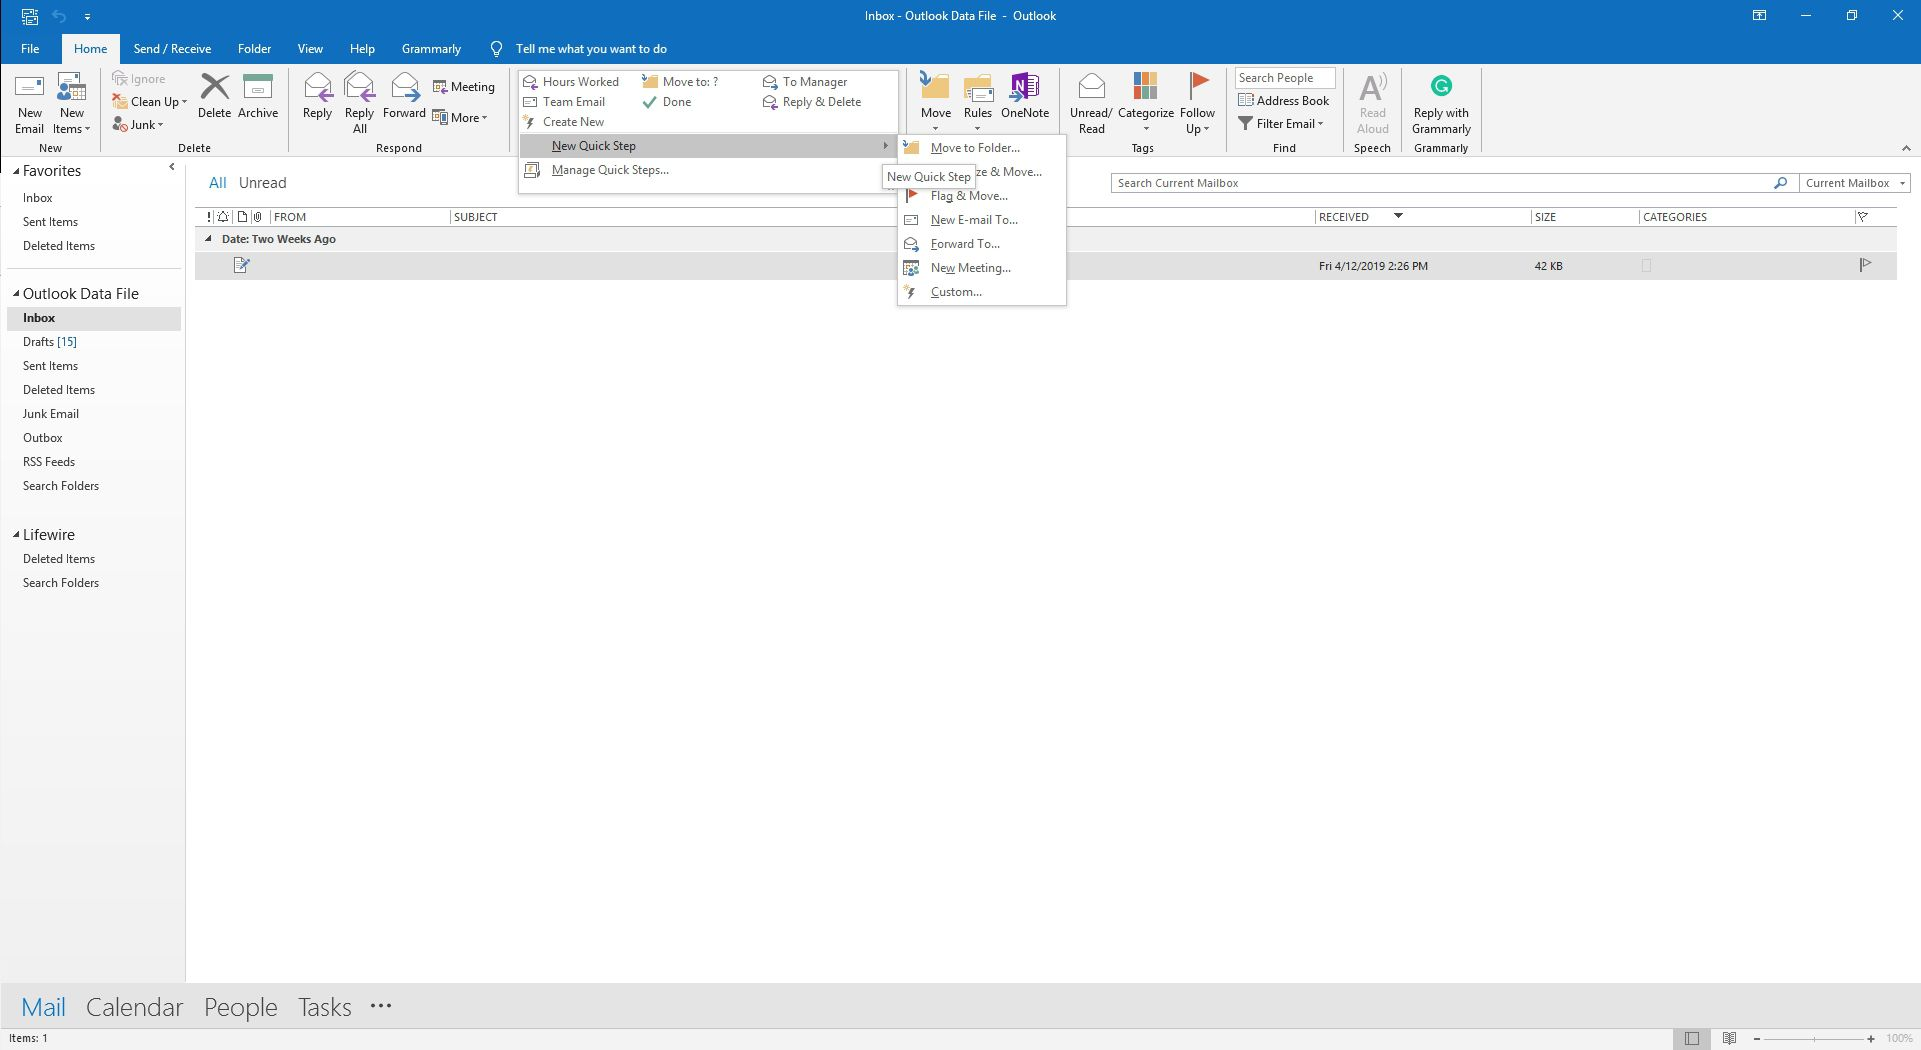 The Quick Steps group in Outlook.